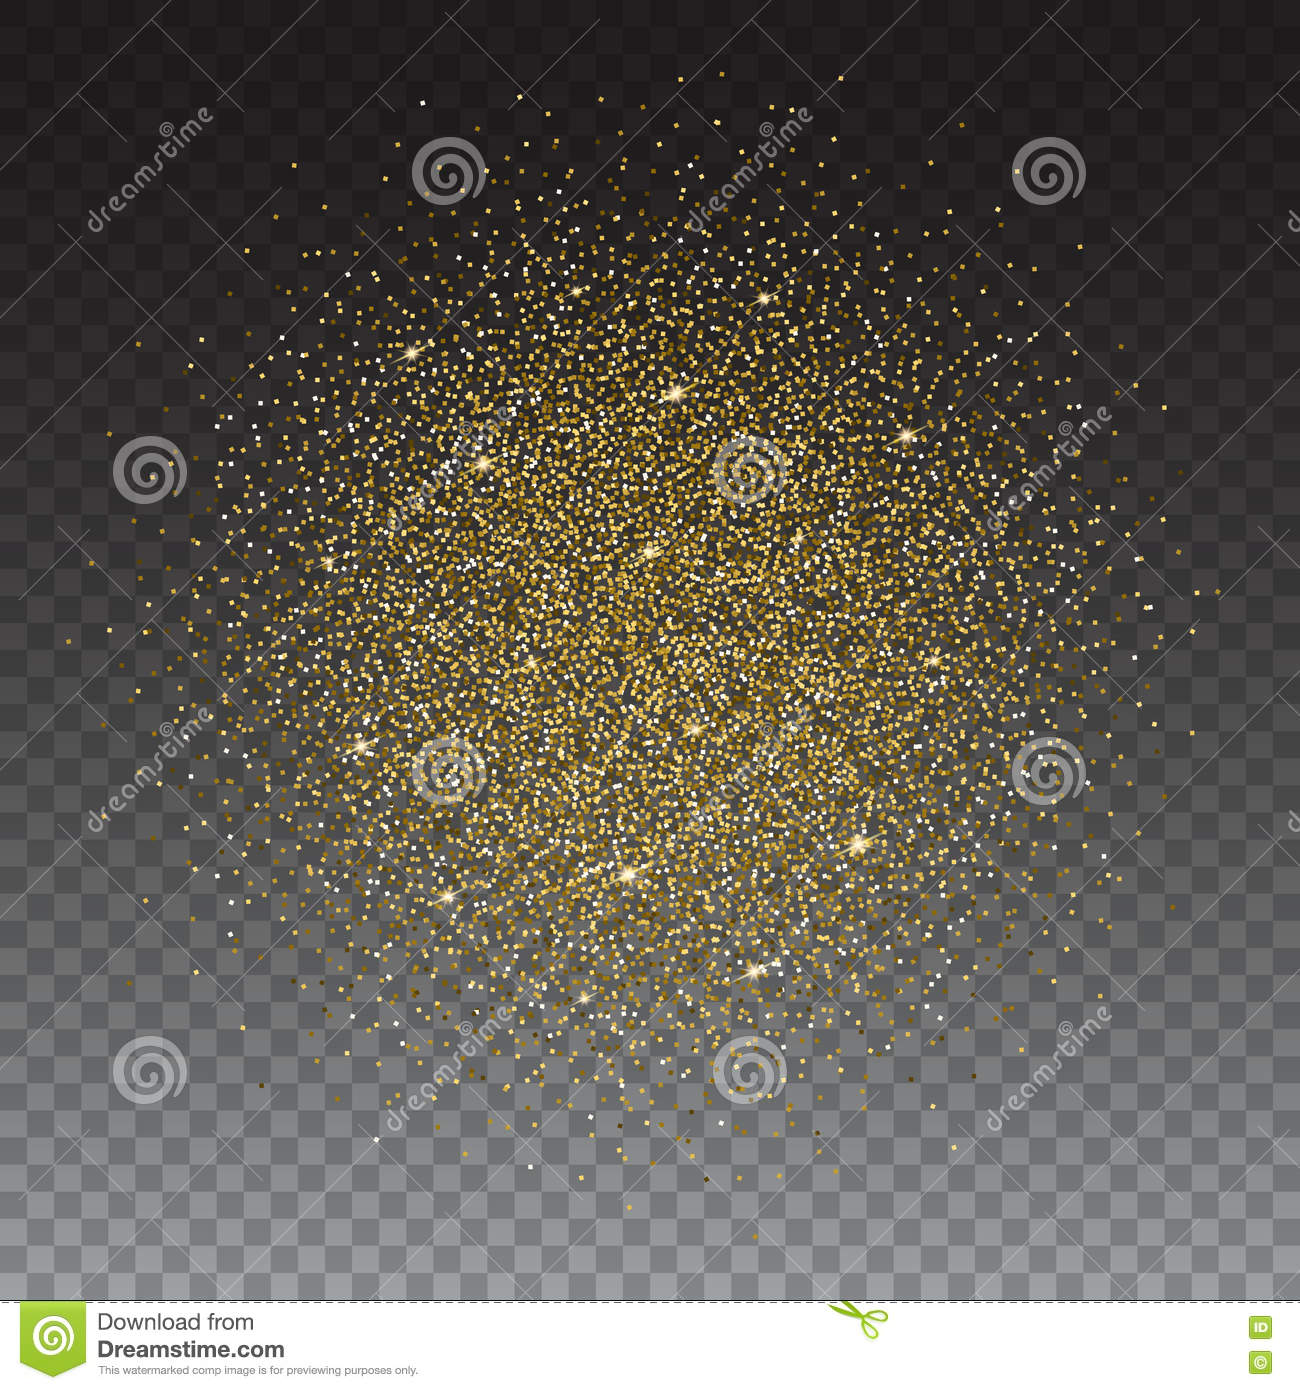 Gold glitter bright vector transparent background golden sparkles - Gold Glitter And Bright Sand Transparent Background Gold Glitter Bright Vector Transparent Background Golden Sparkles